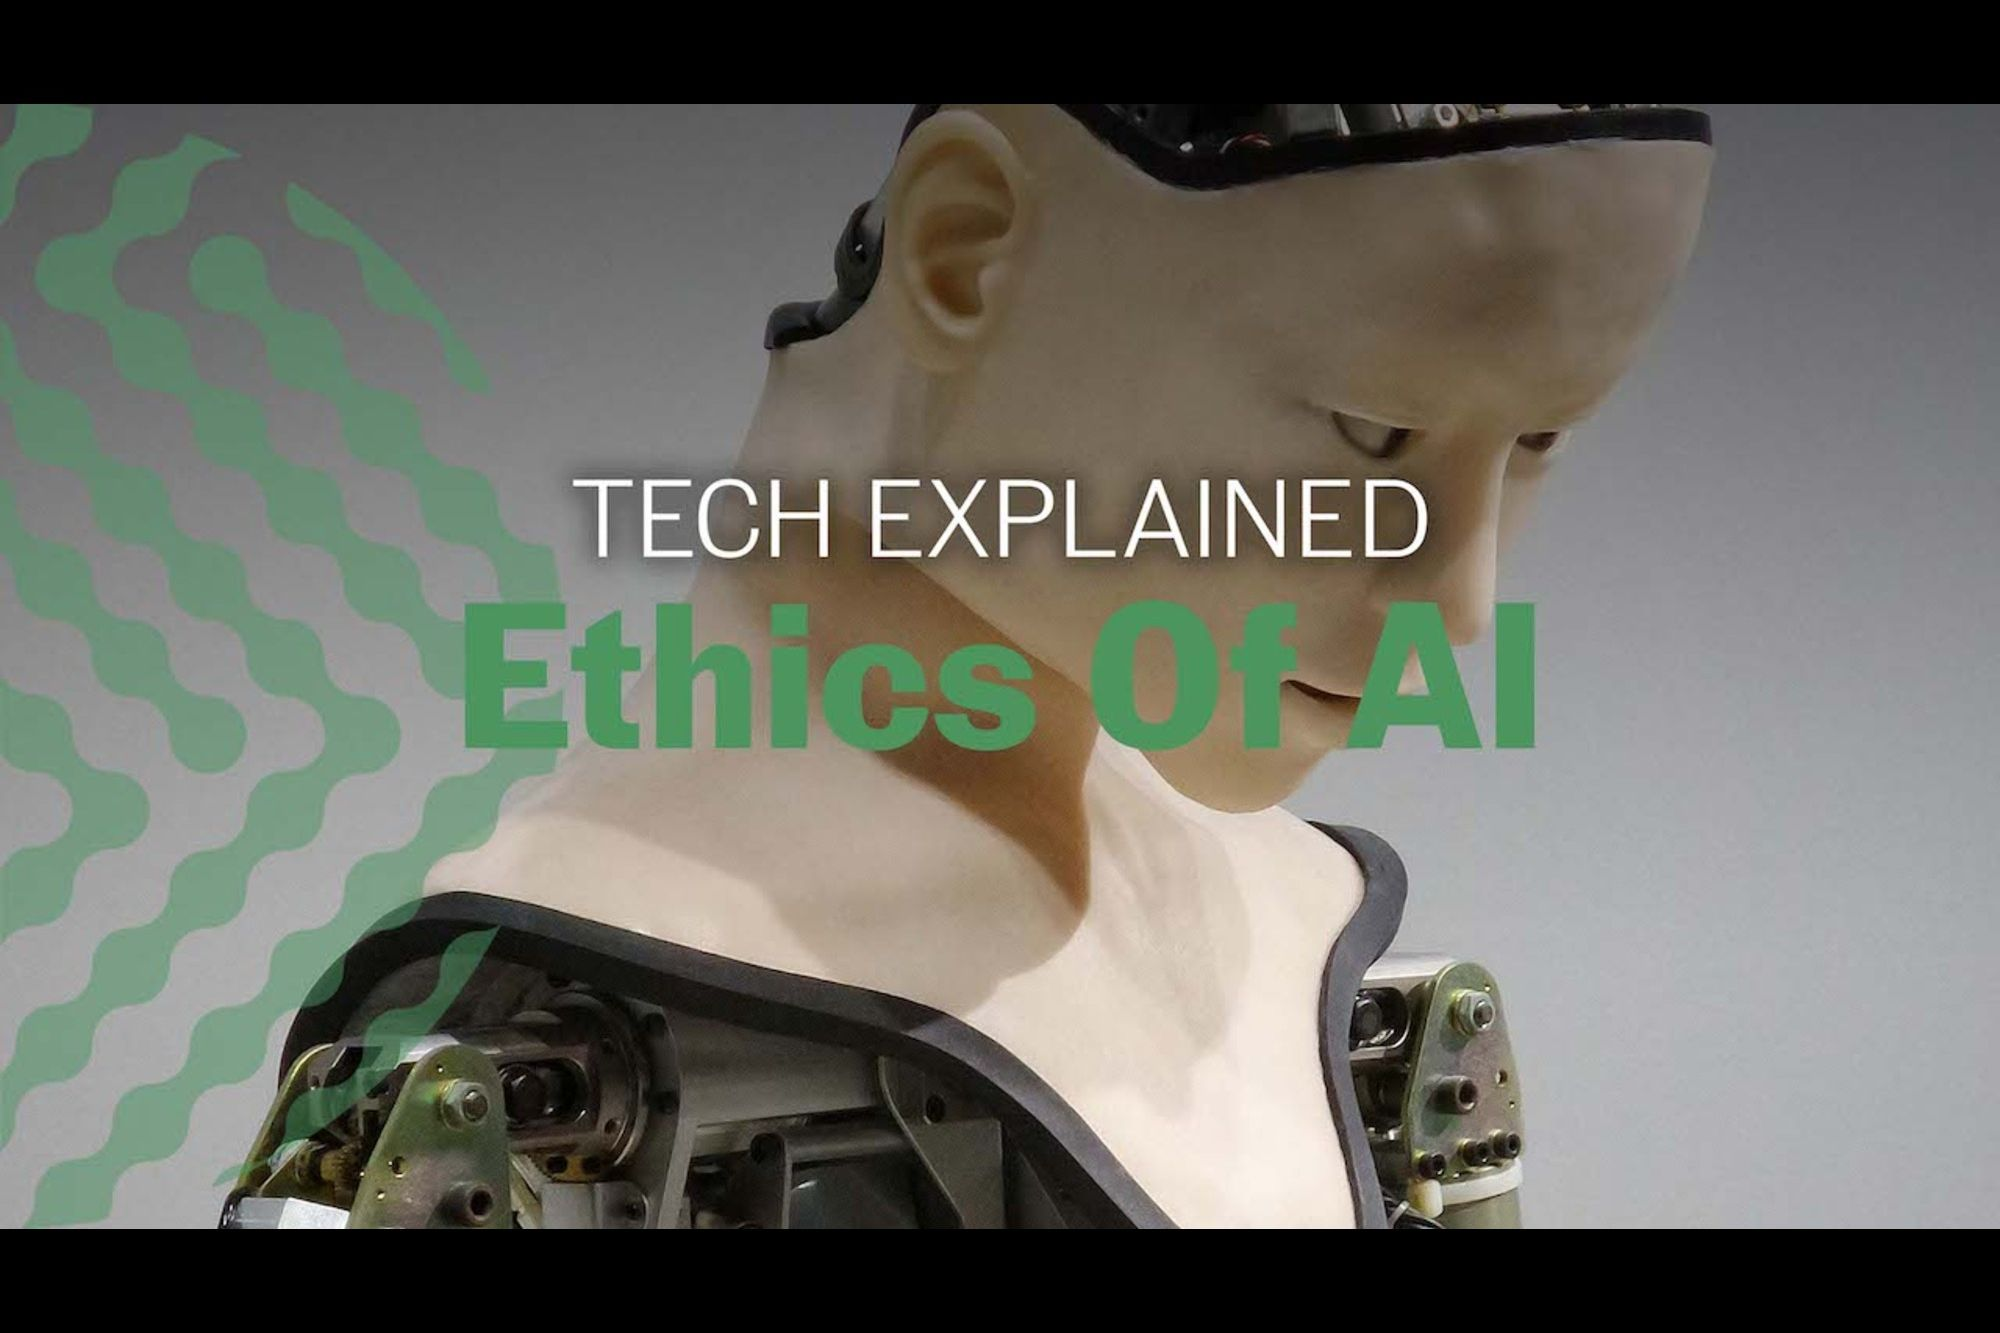 What Are Some of the Ethical Concerns of Artificial Intelligence?